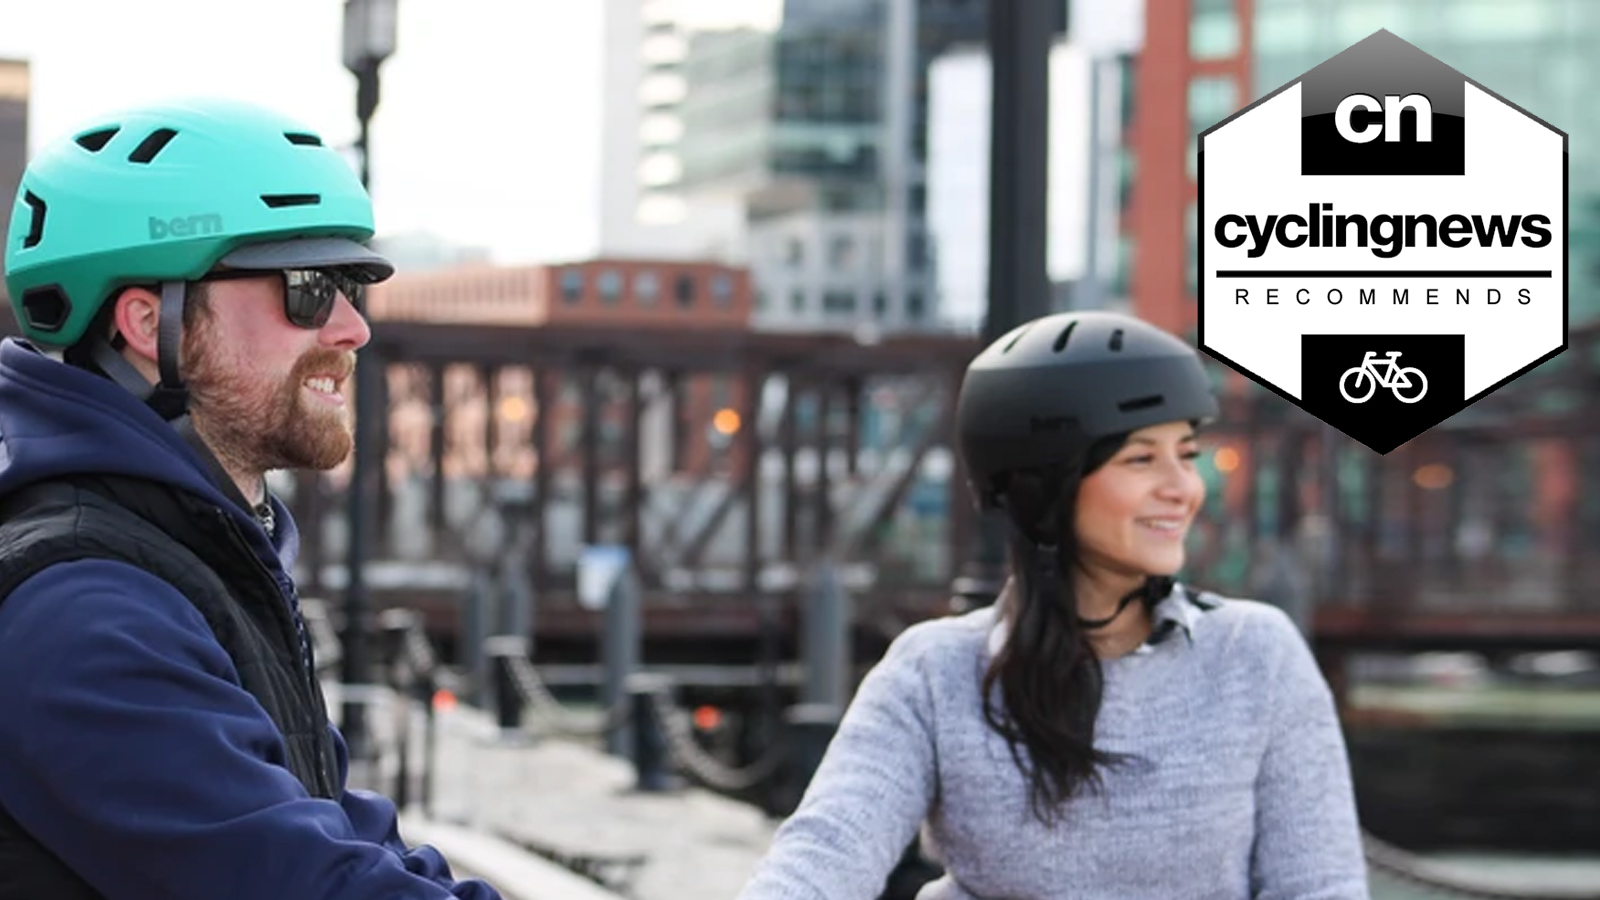 Best Commuter Helmets Safe And Stylish Helmets Designed For The City Streets Cyclingnews